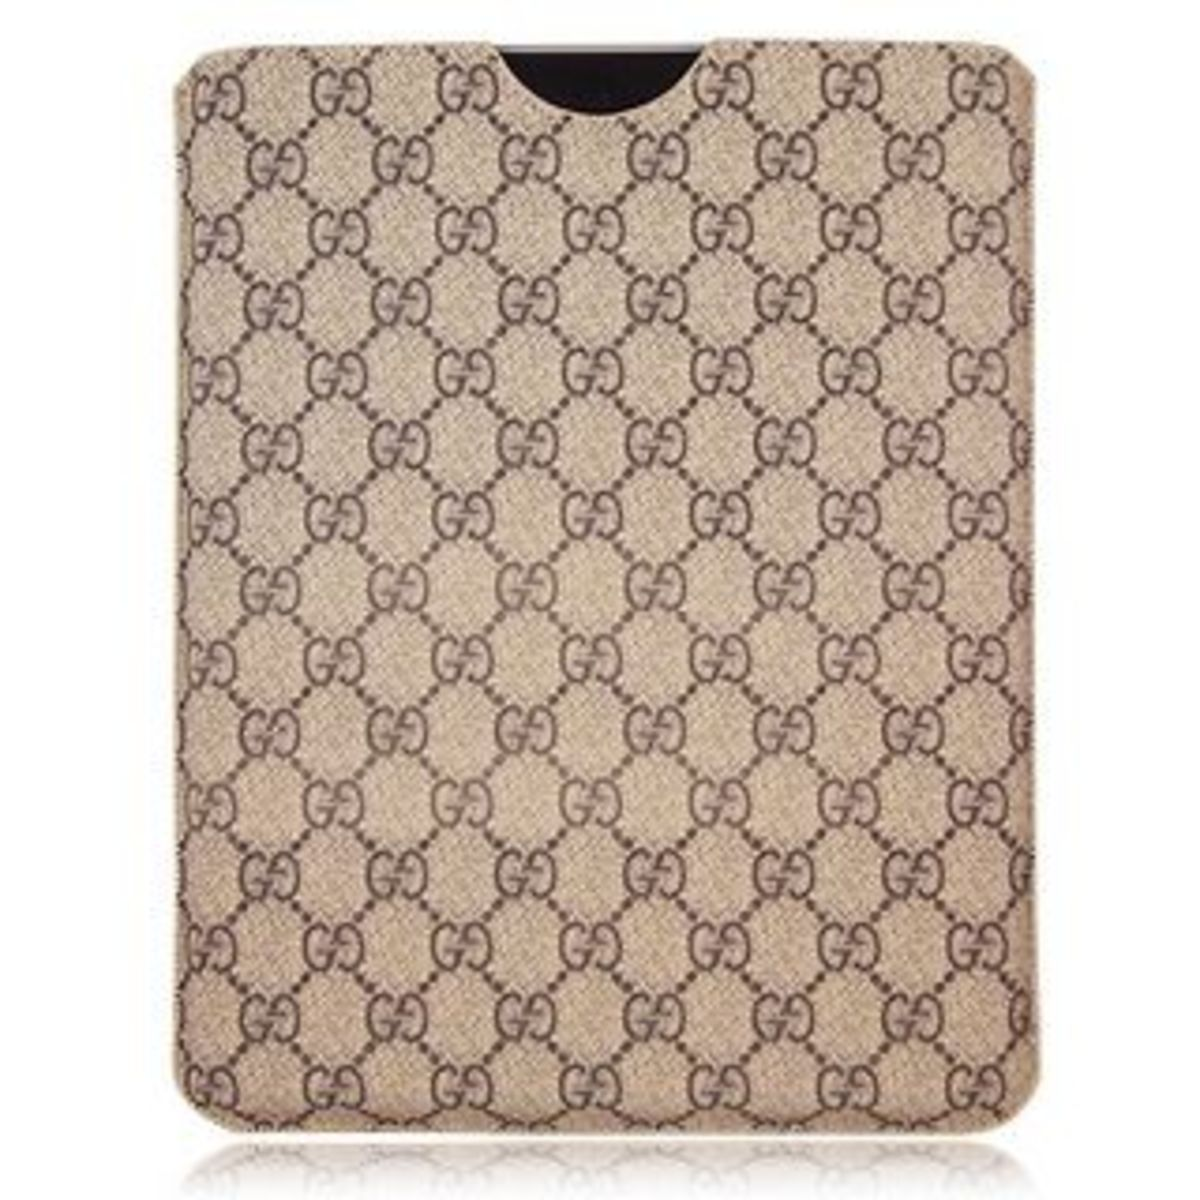 Gucci iPad Sleeve - Fashion ipad case